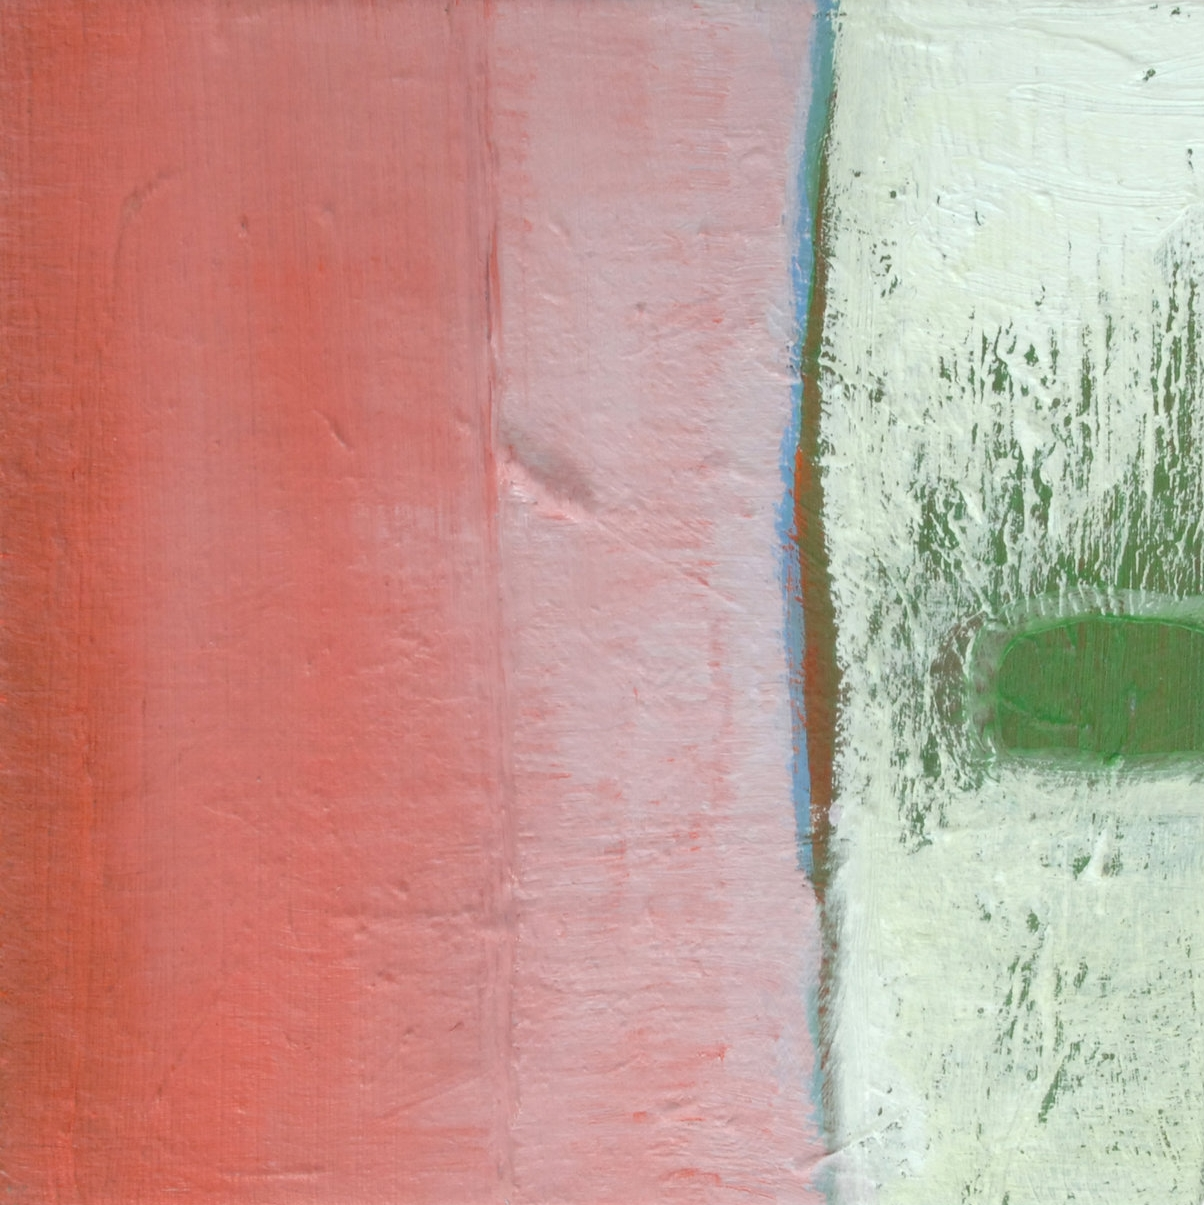 Interstice of Thought - Oil on Canvas | 10cm x 10cm | 2013